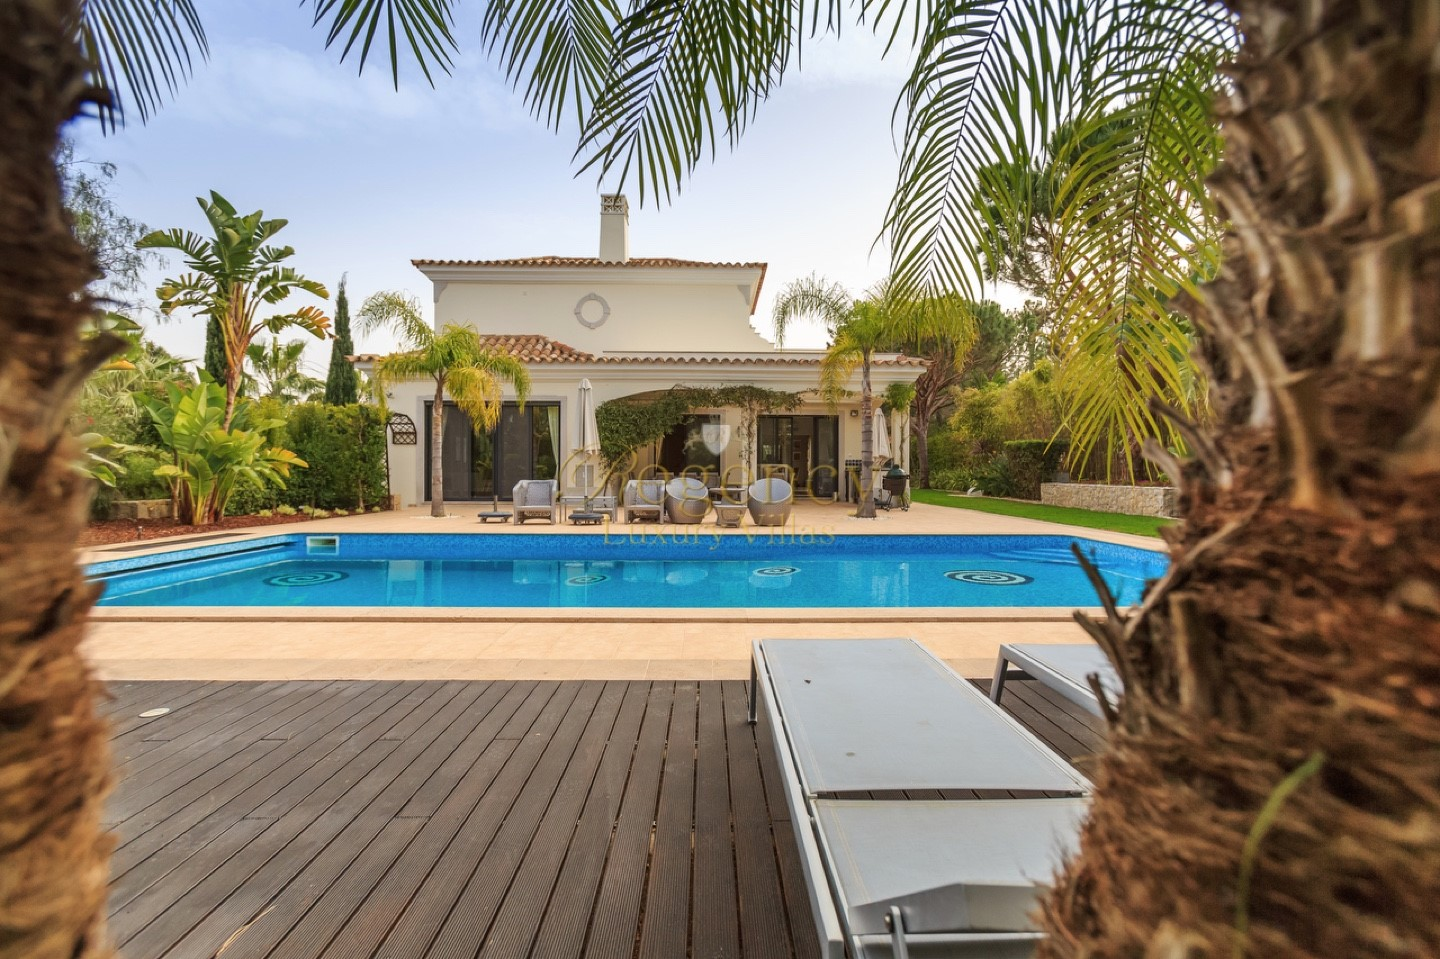 Quinta Do Lago Luxury Villa To Rent 5 Bedrooms With Pool Regency Luxury Villas